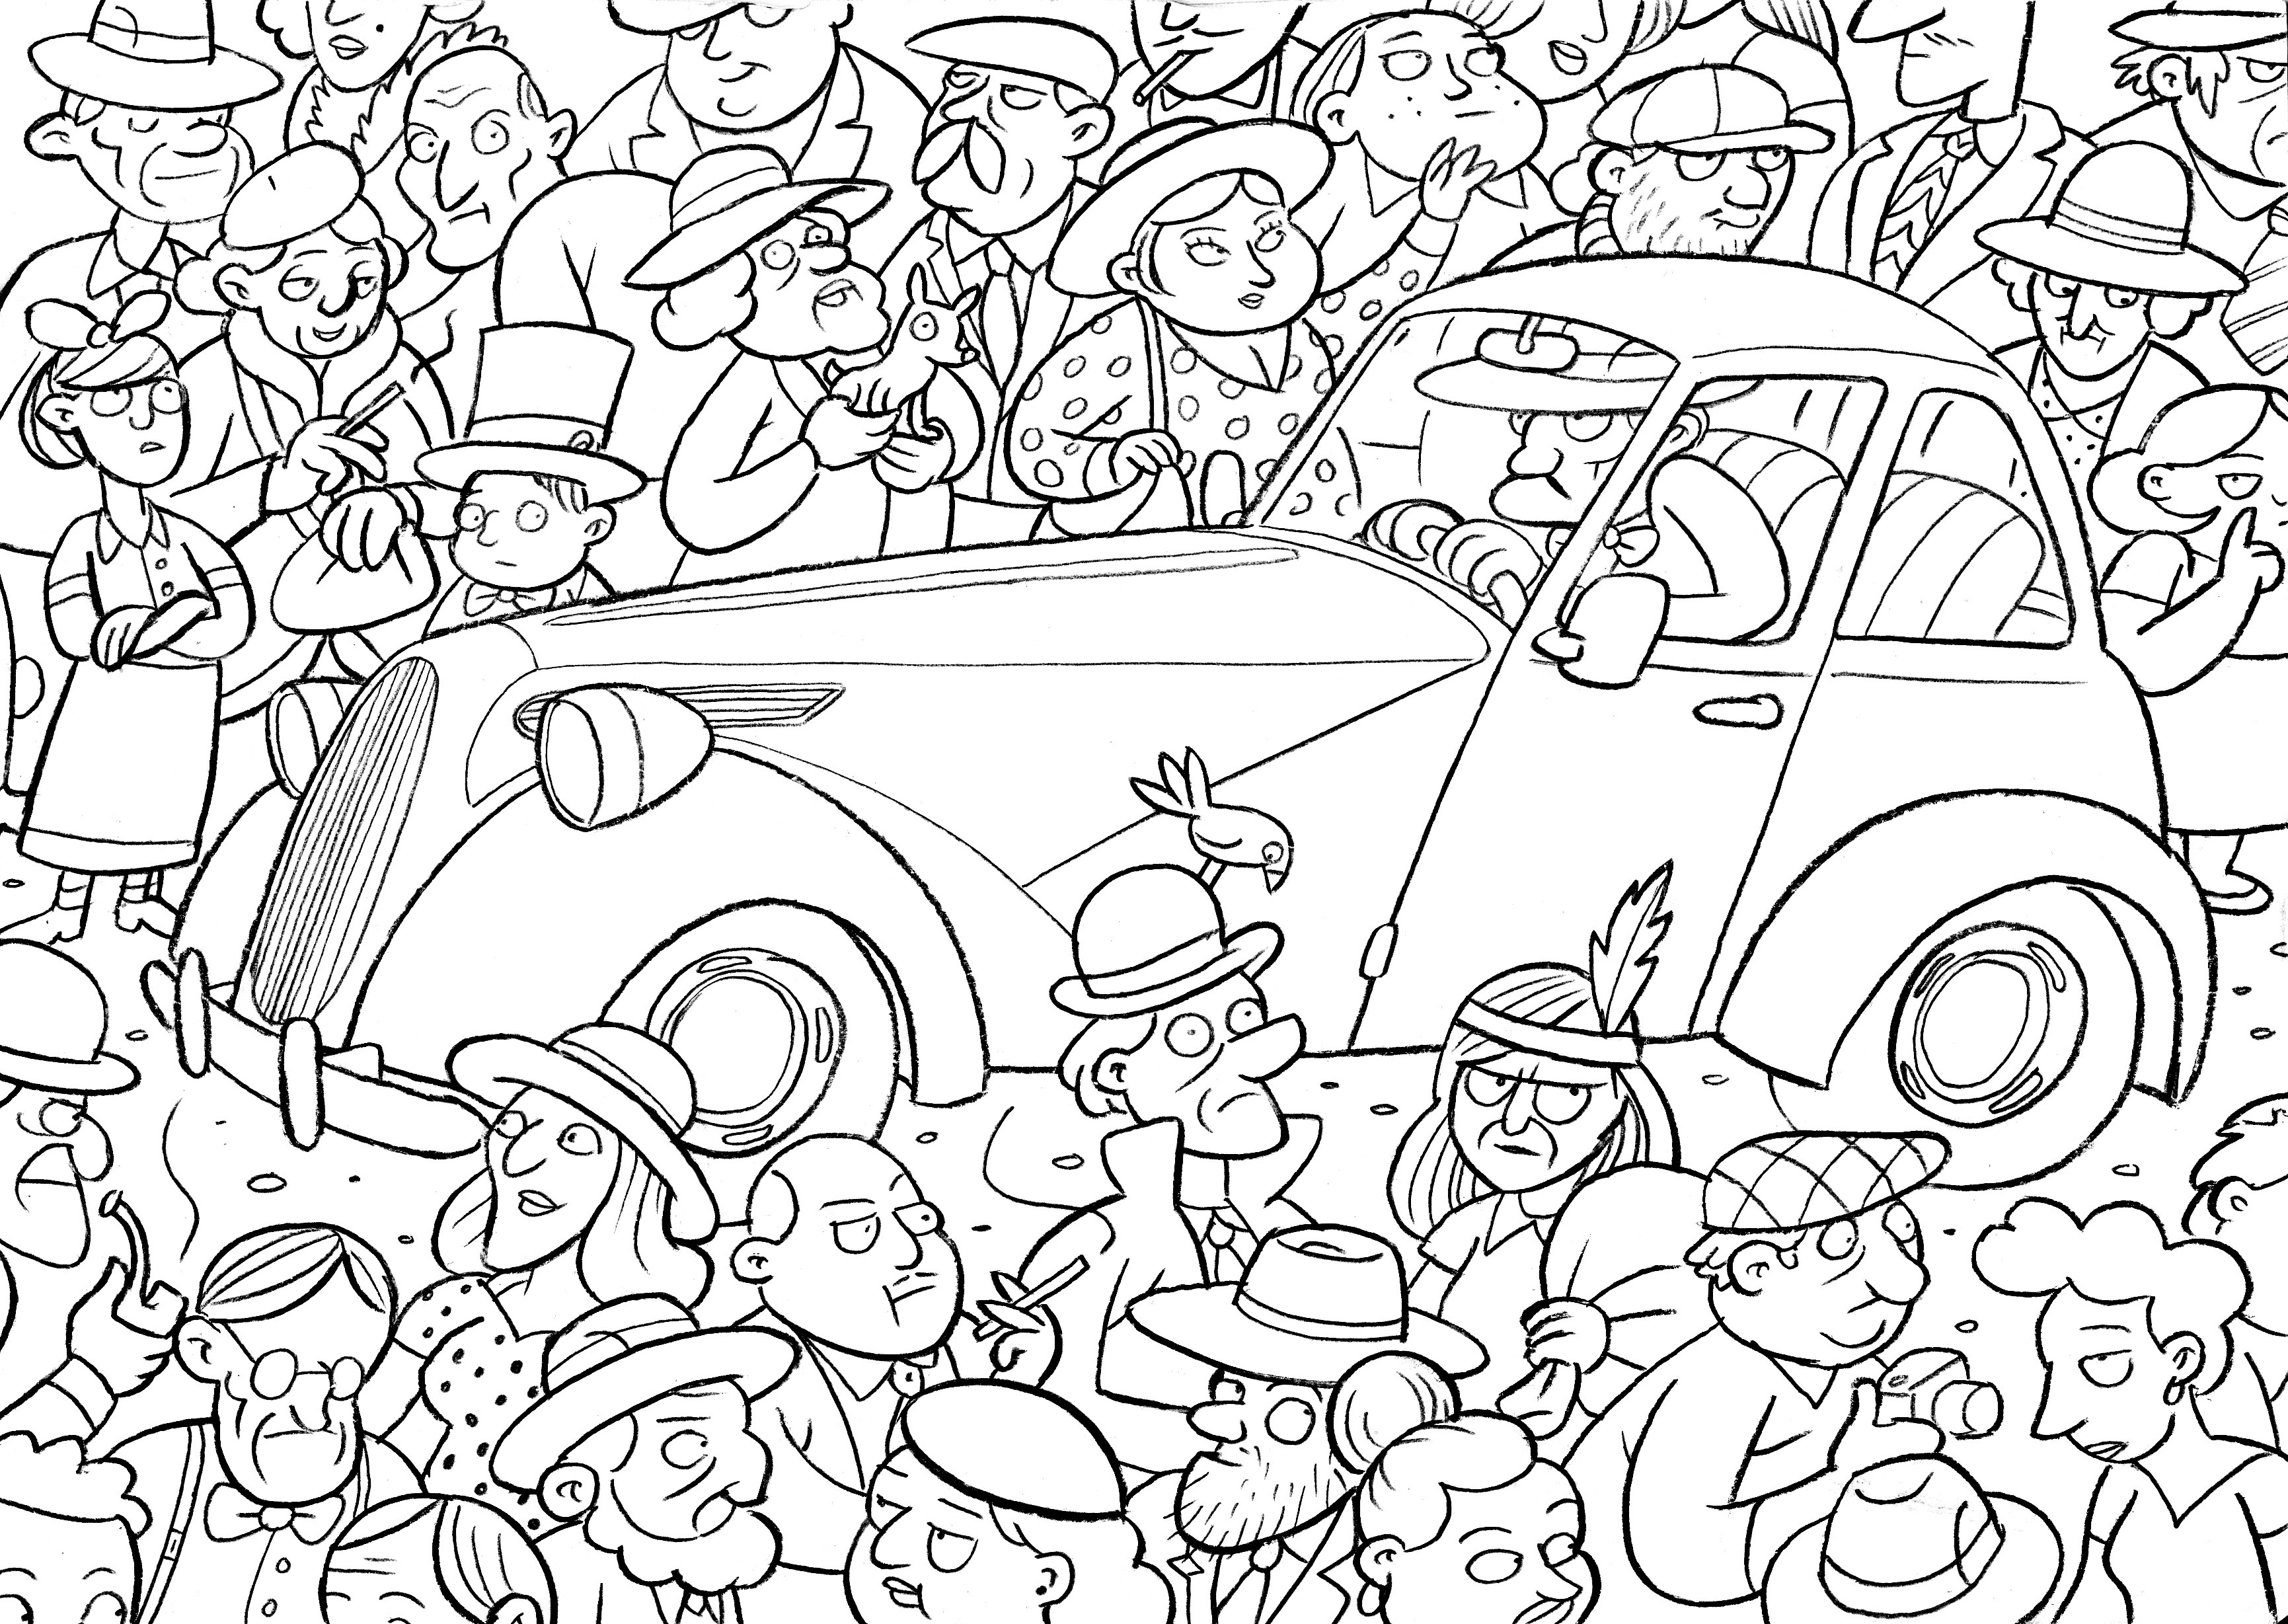 S Crowd Colouring Sheet